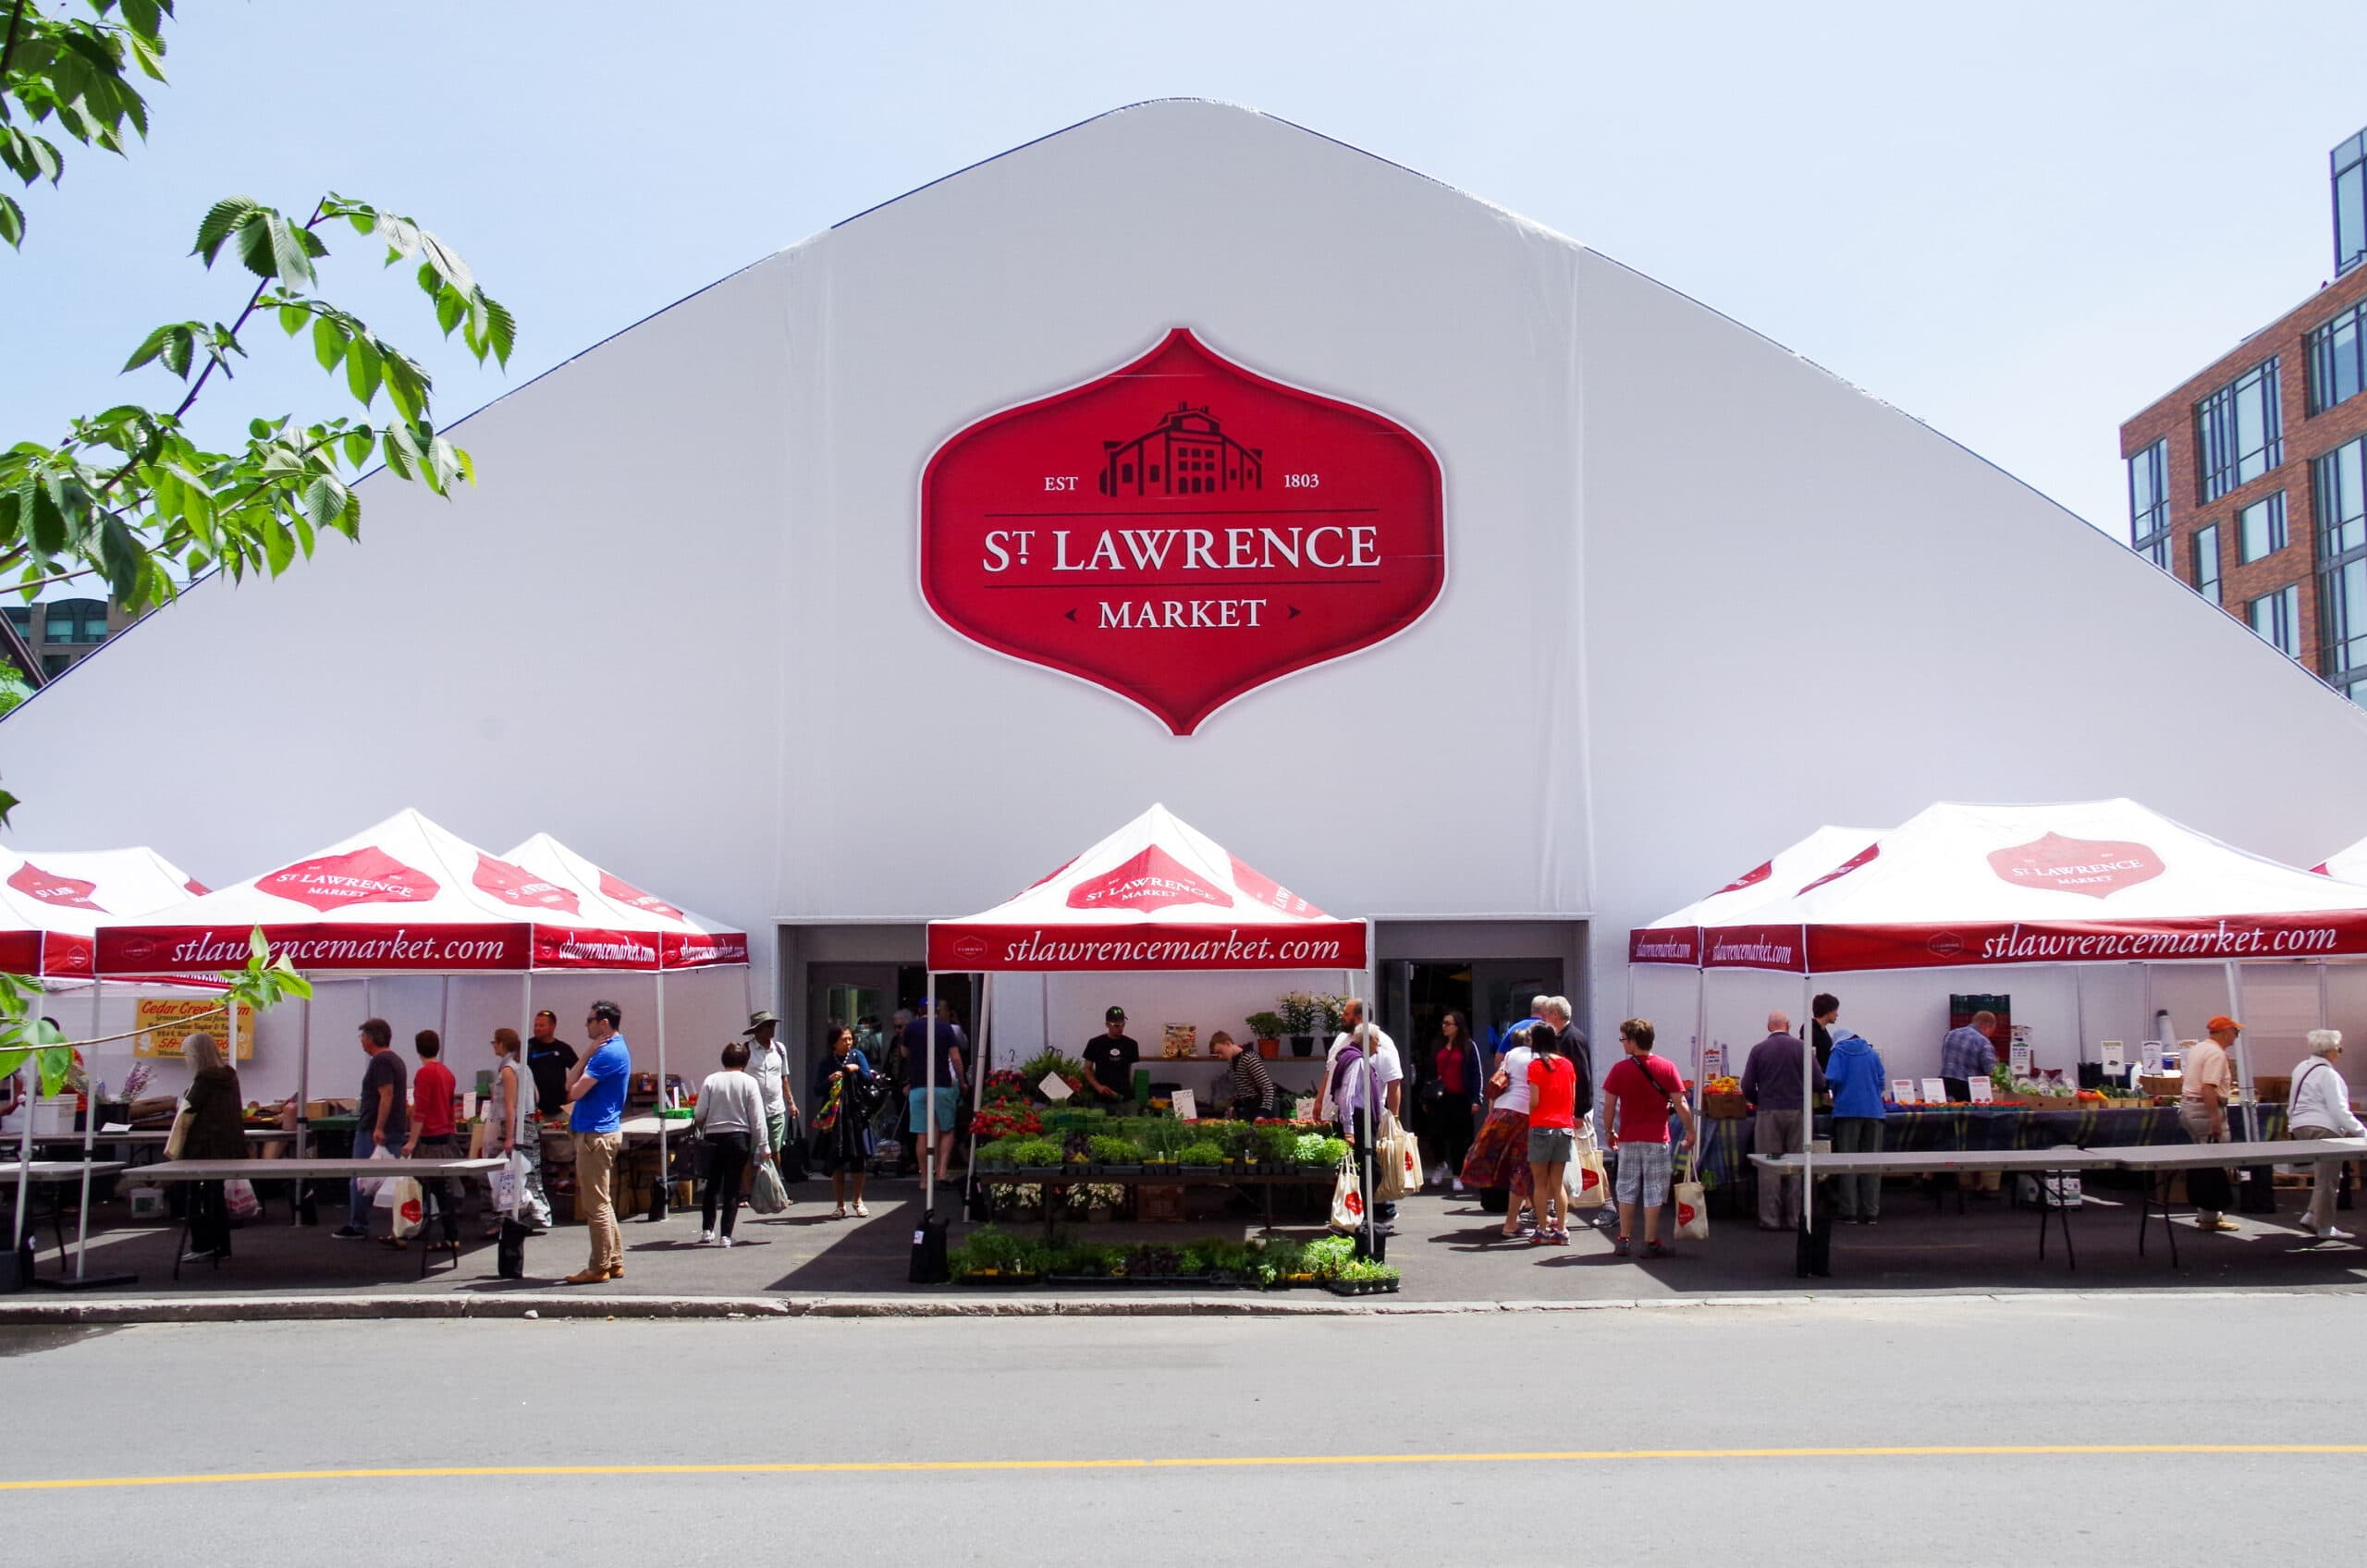 Fabric Building Event Structures for retail space